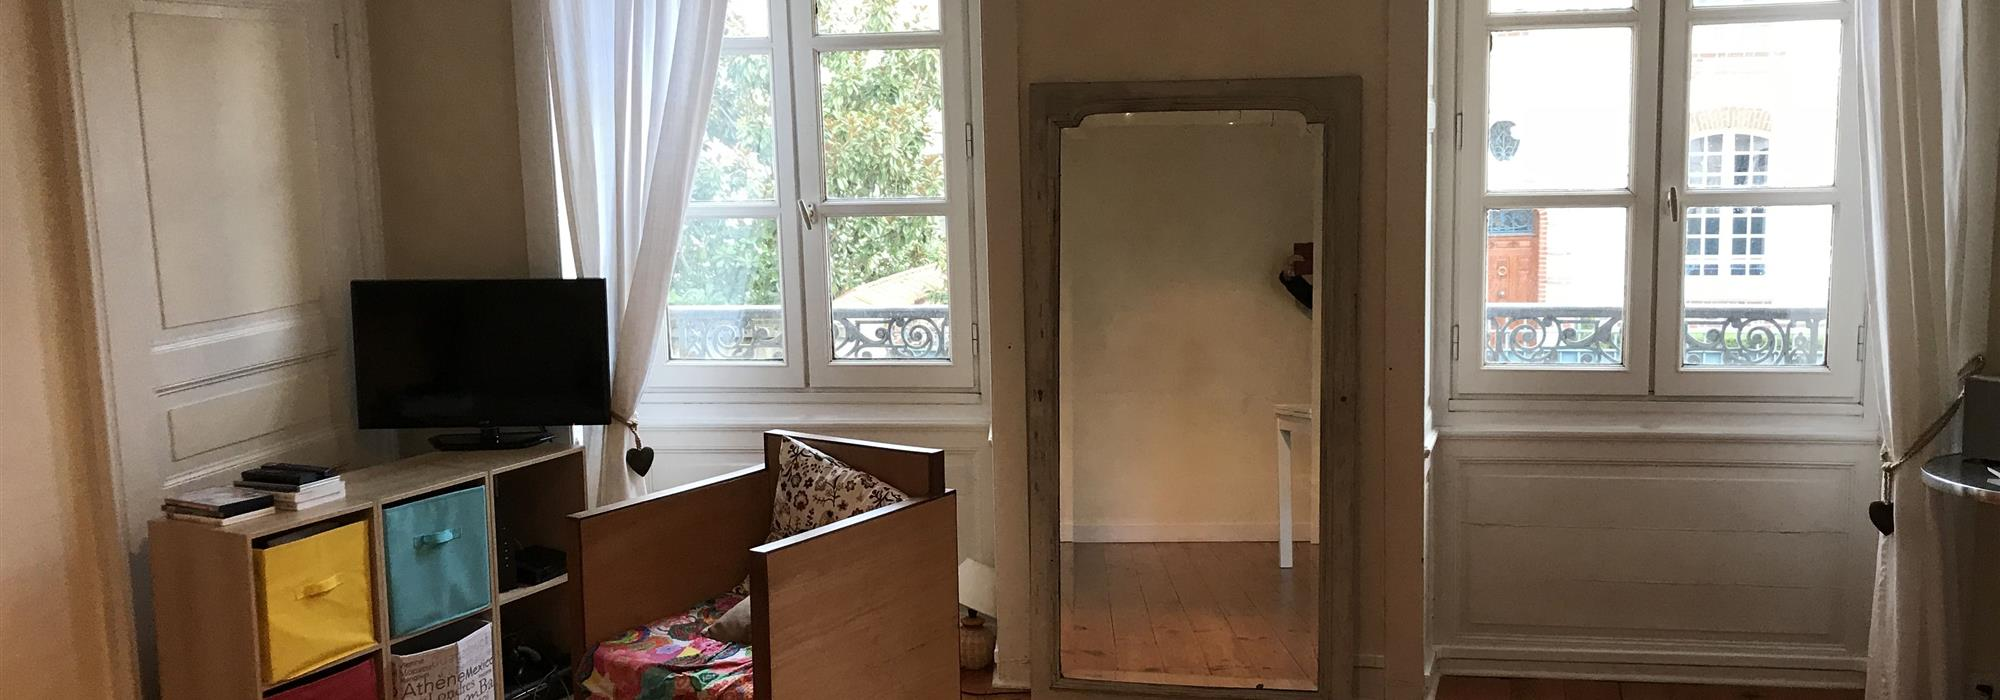 Appartement T3 Rennes Thabor